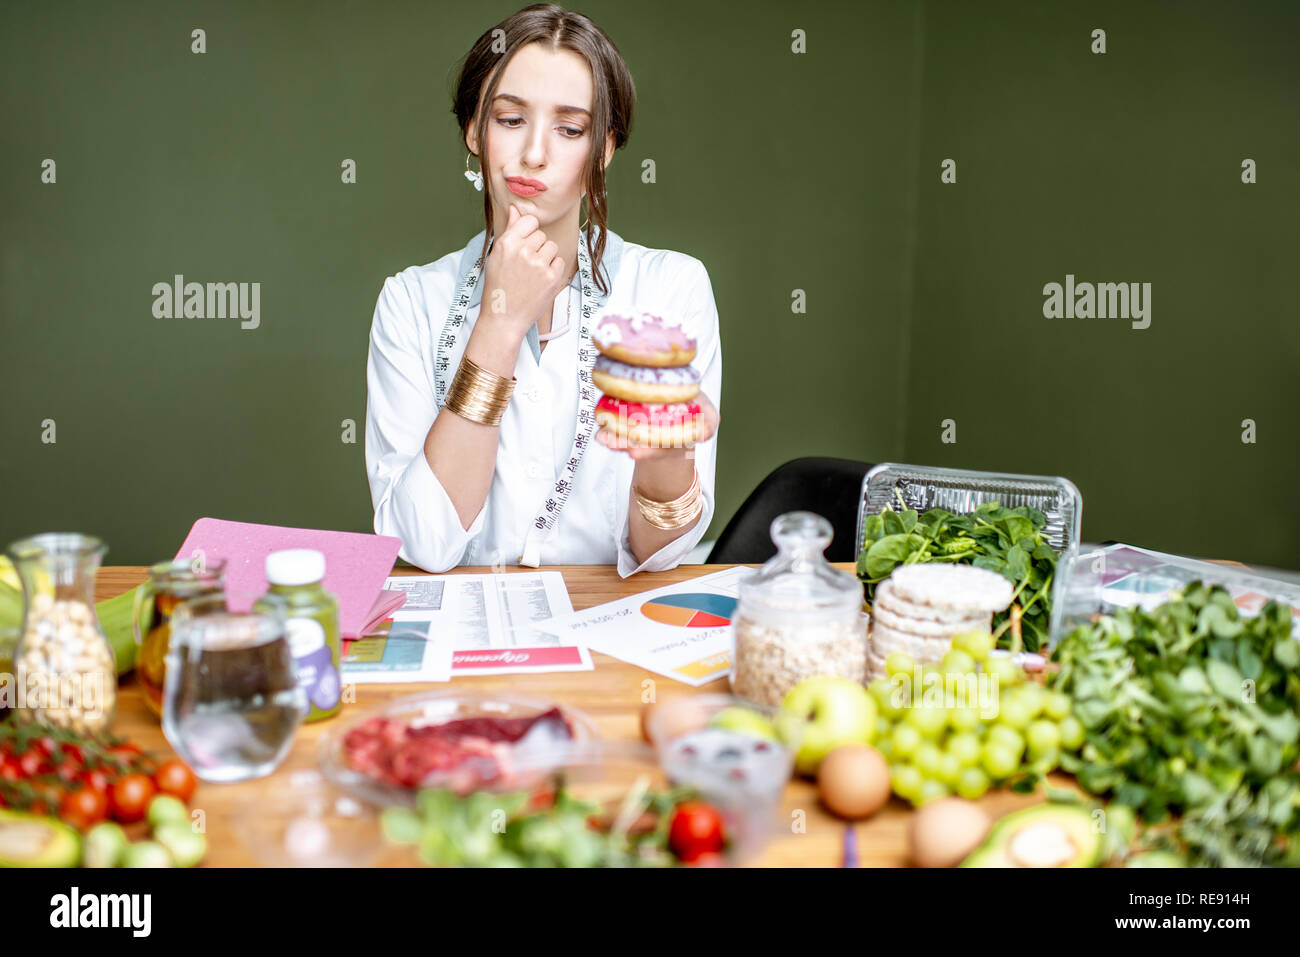 Portrait of a sad woman nutritionist holding sweet donuts sitting at the table full of healthy food on the green background - Stock Image